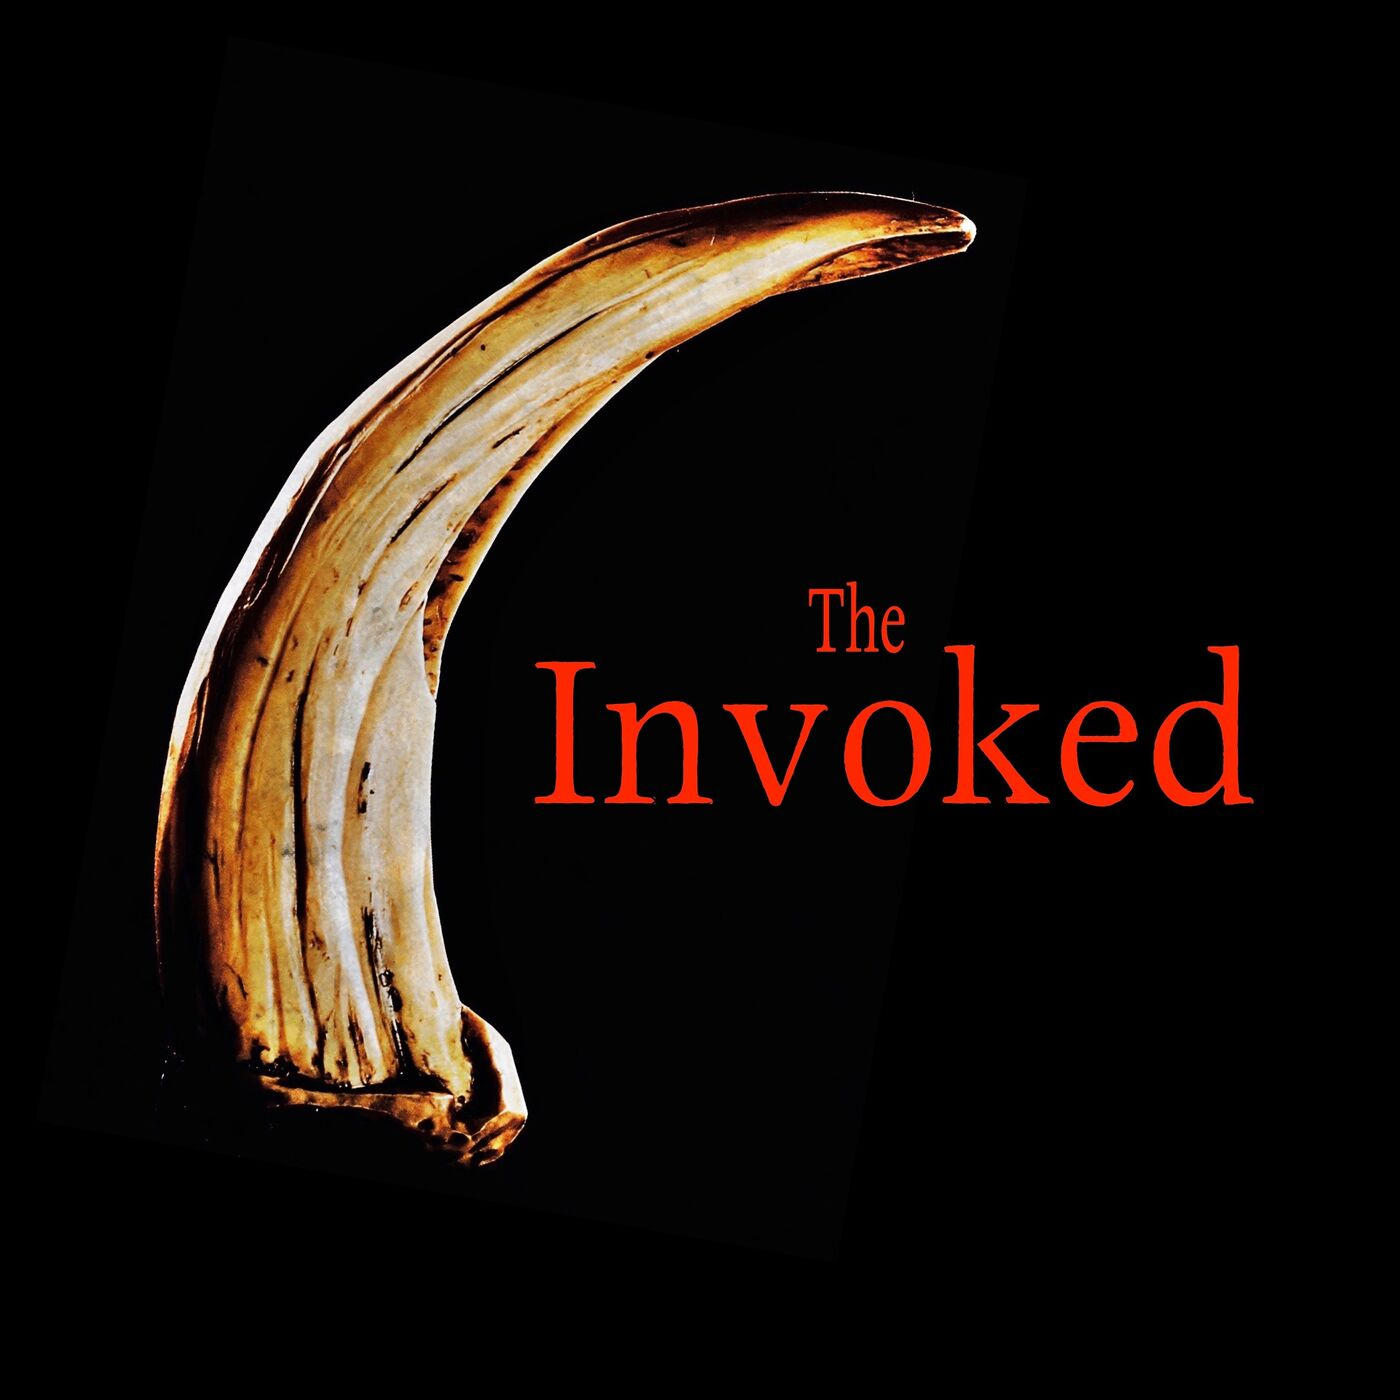 Chapter 7 The Invoked